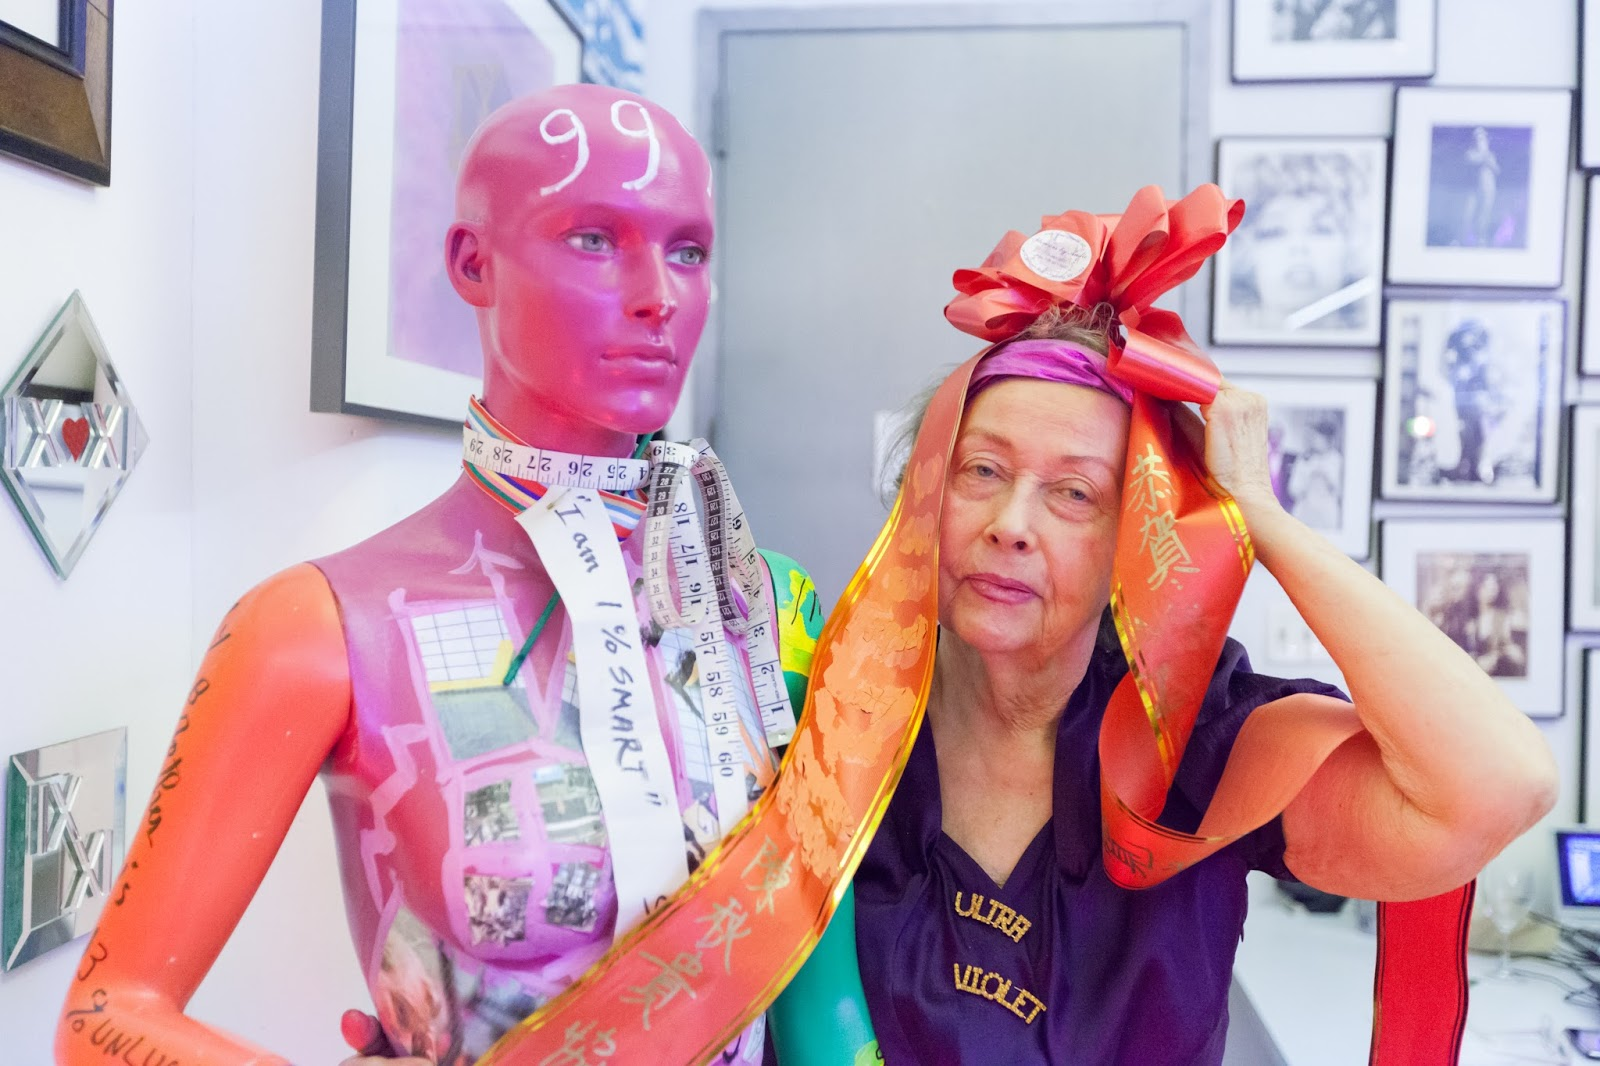 Isabelle Collin Dufresne - Ultra Violet, an artist and muse to Salvador Dali and Andy Warhol. I photographed her and her work in her studio in New York. Ultra Violet with her 99 percent mannequin. Photographs by Mirena Rhee.